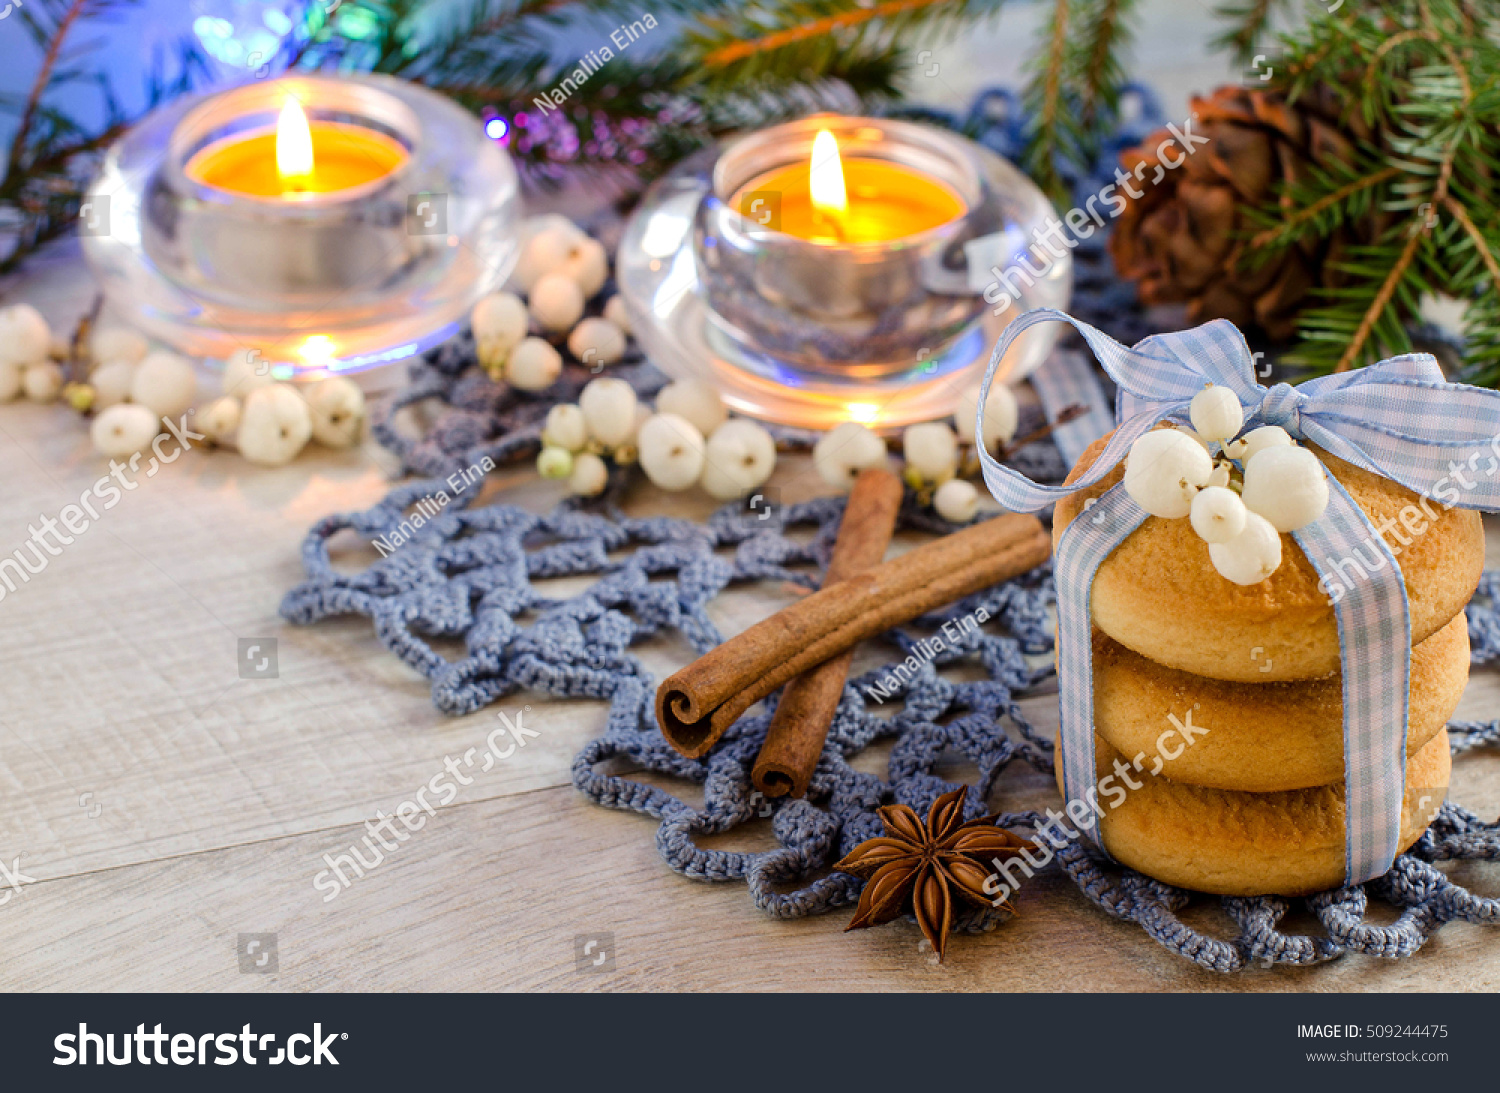 Christmas Cookies Christmas Decorations Candles Blue Stock Photo